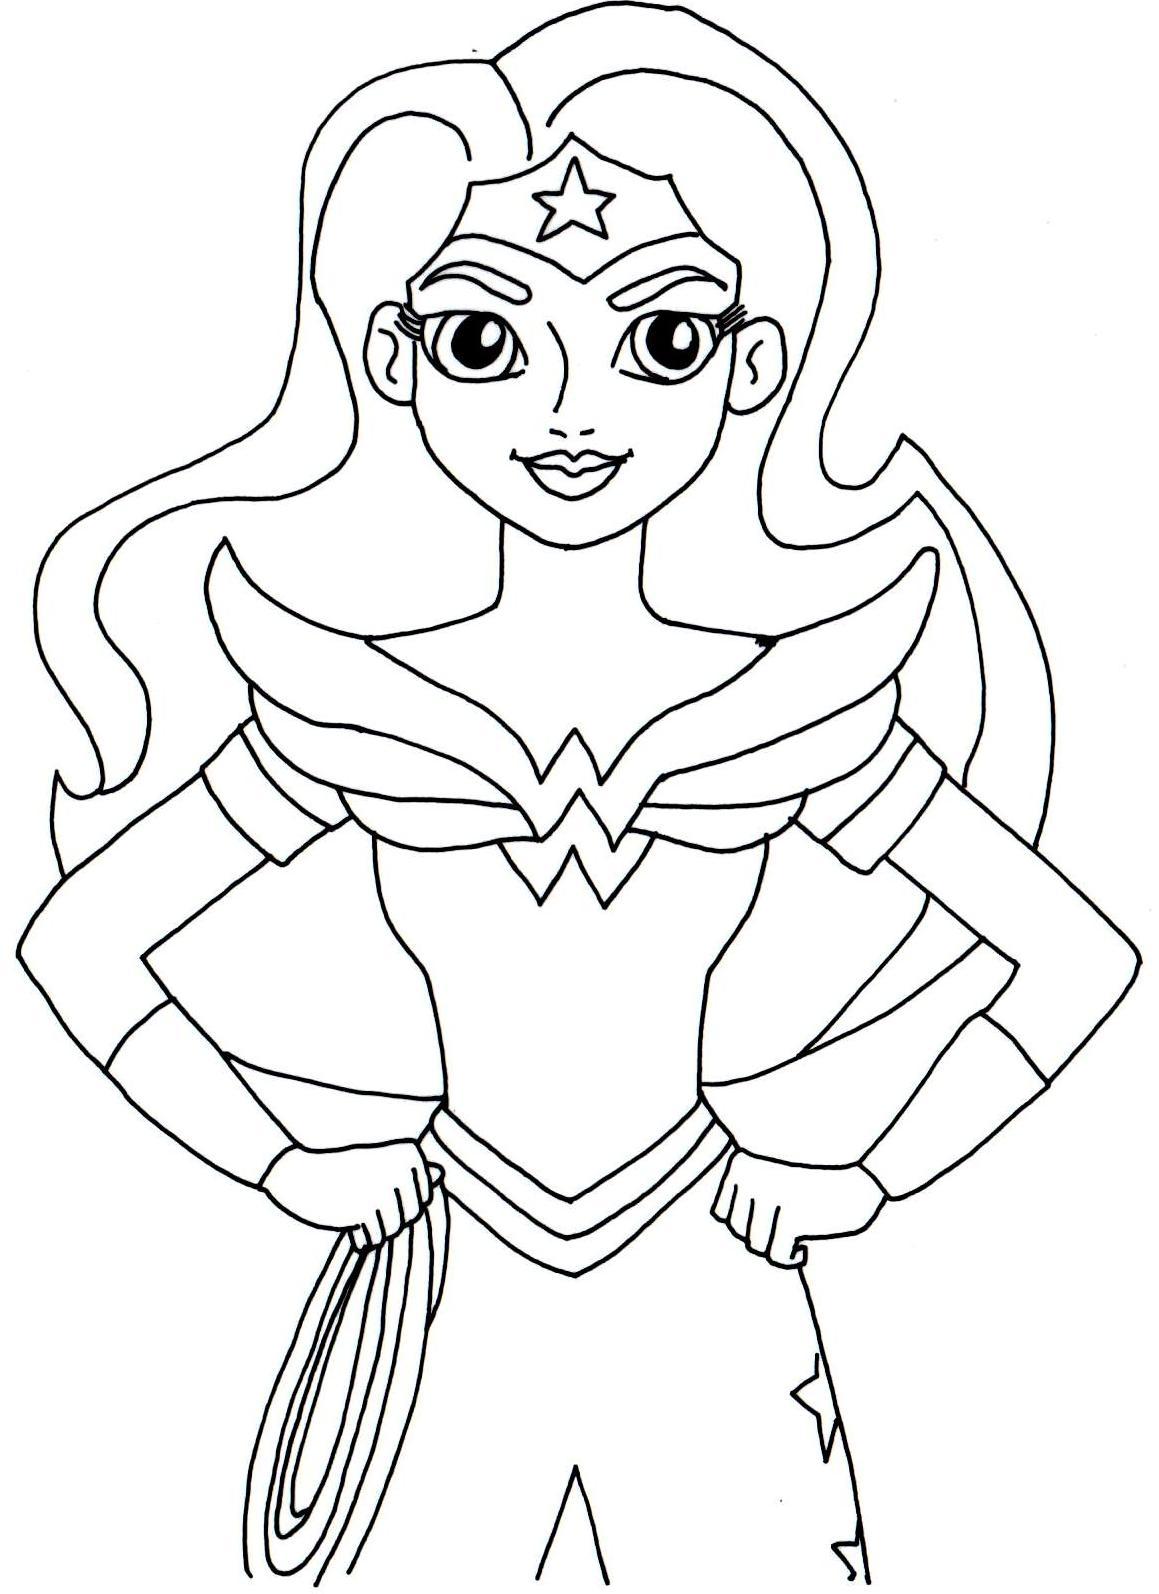 pintable coloring pages - photo#38